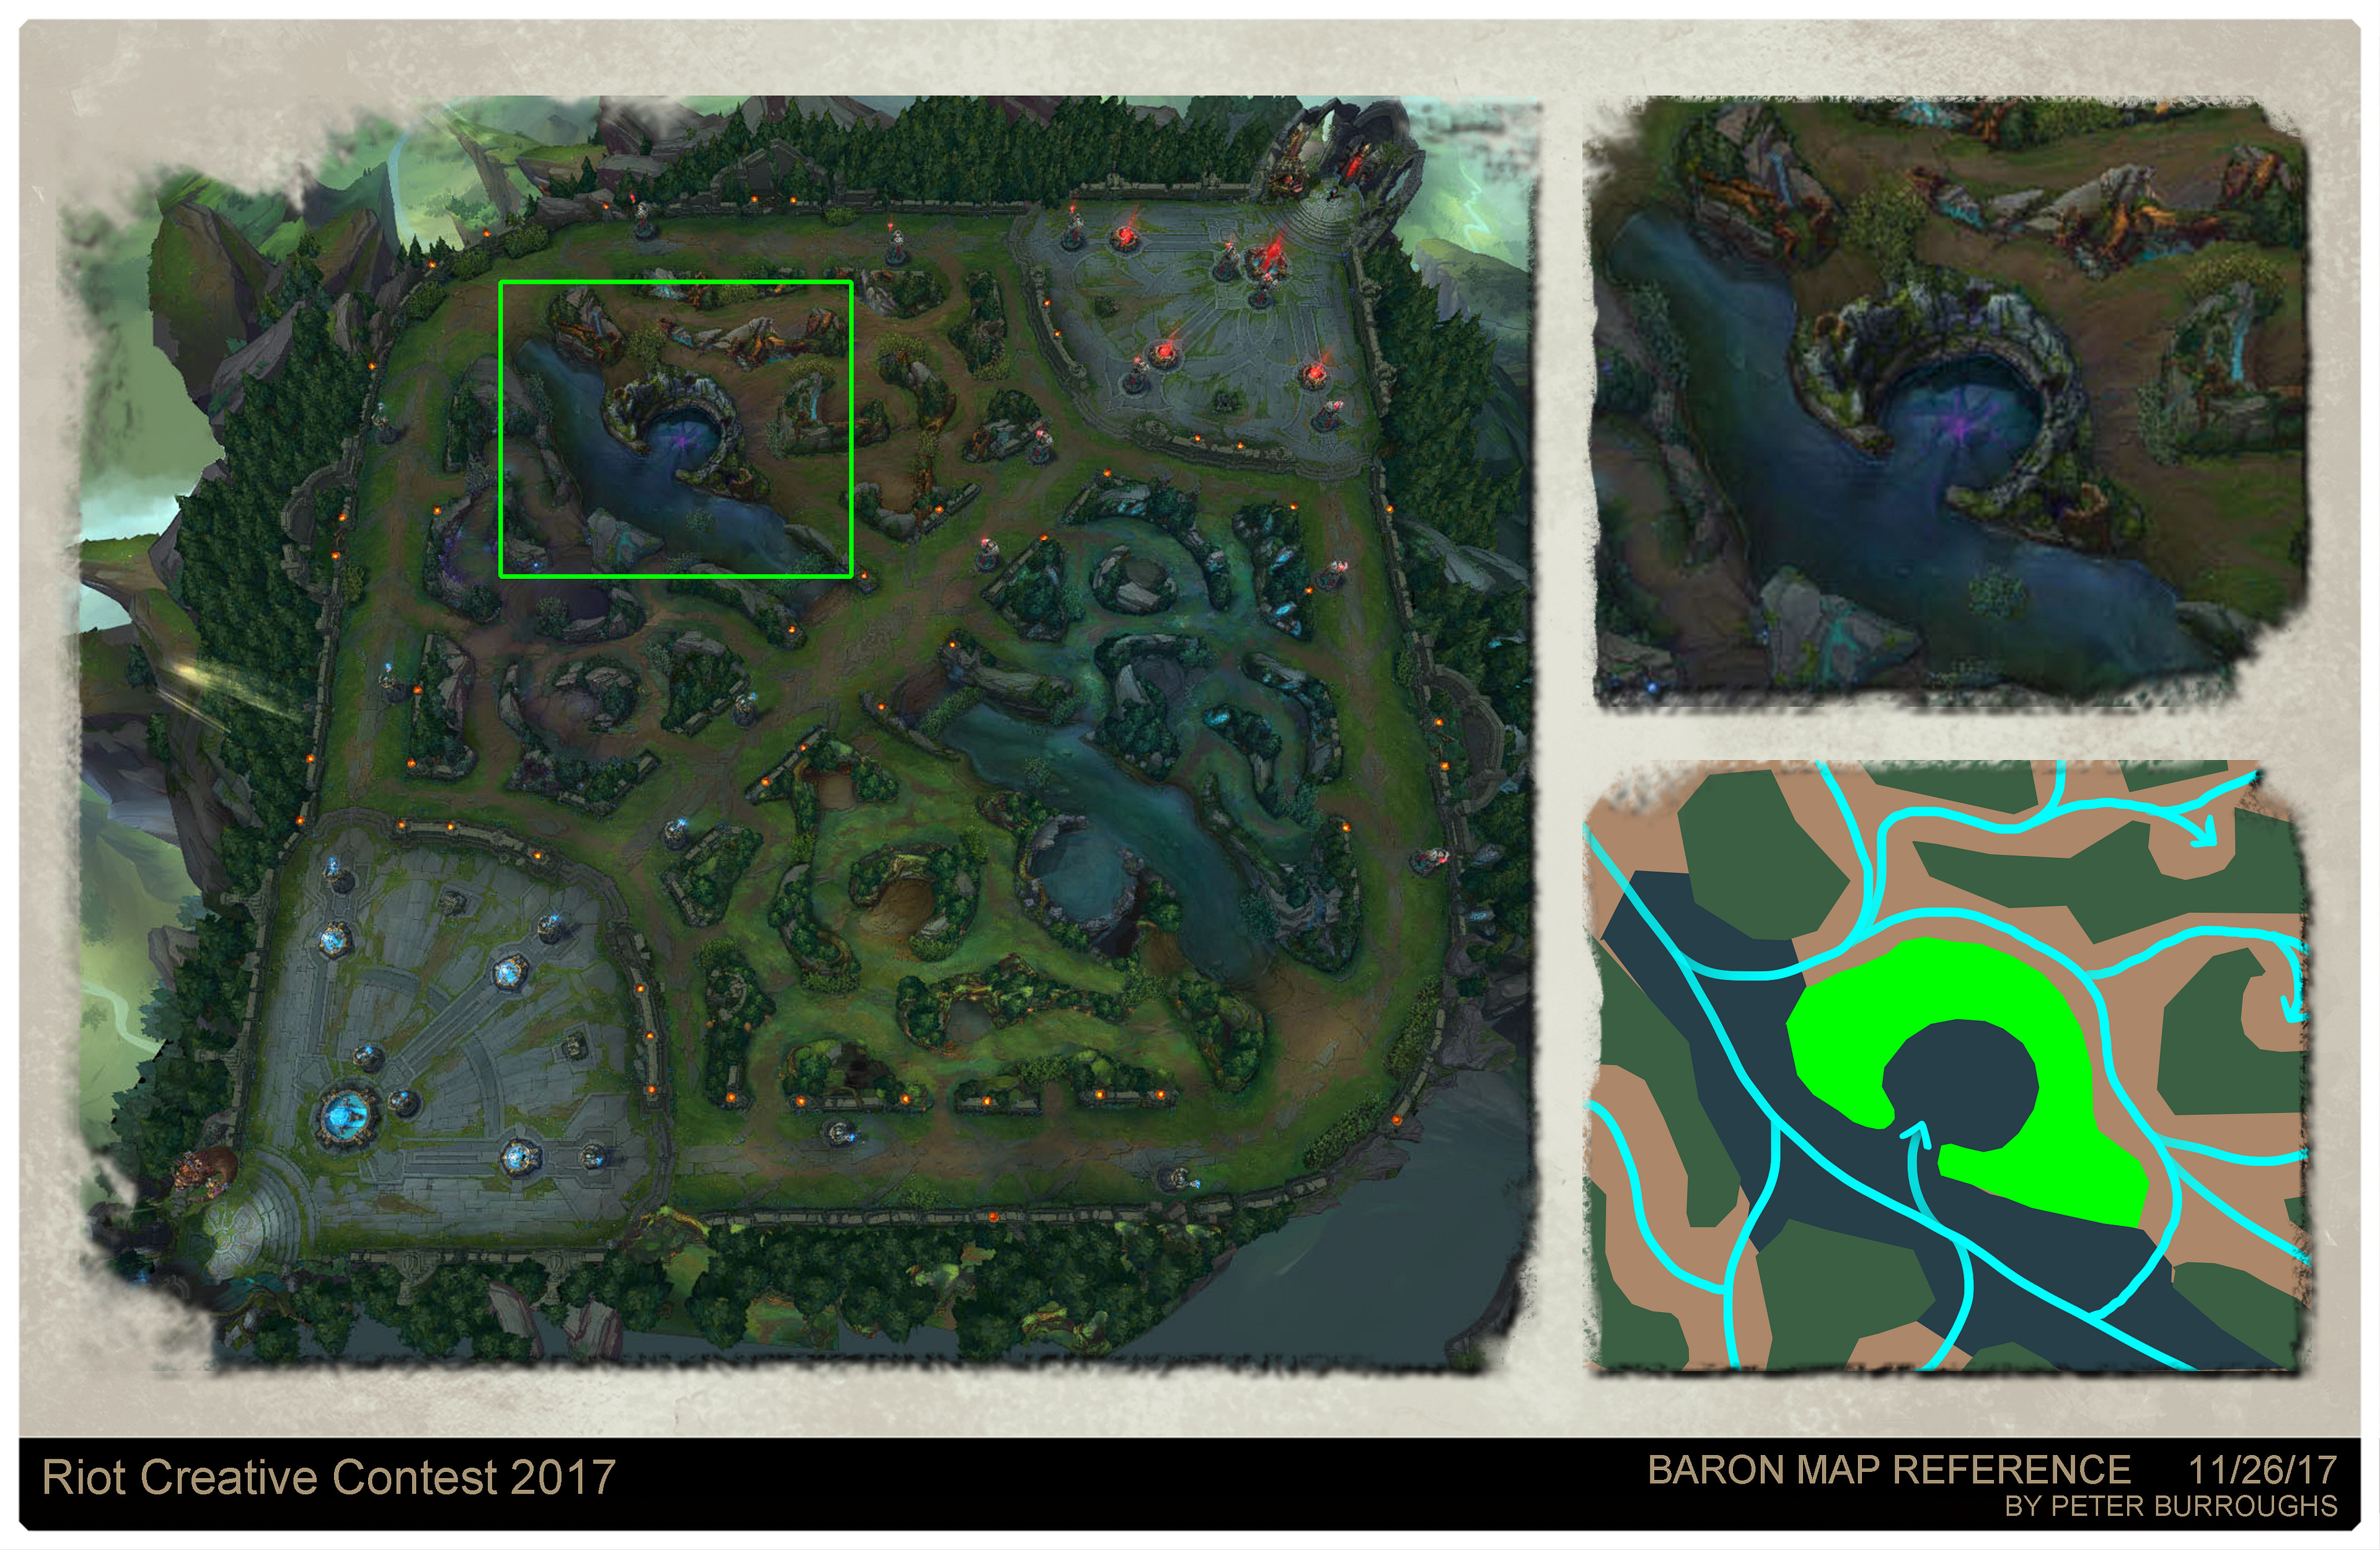 View of Summoner's Rift from Riot Game's League of Legends